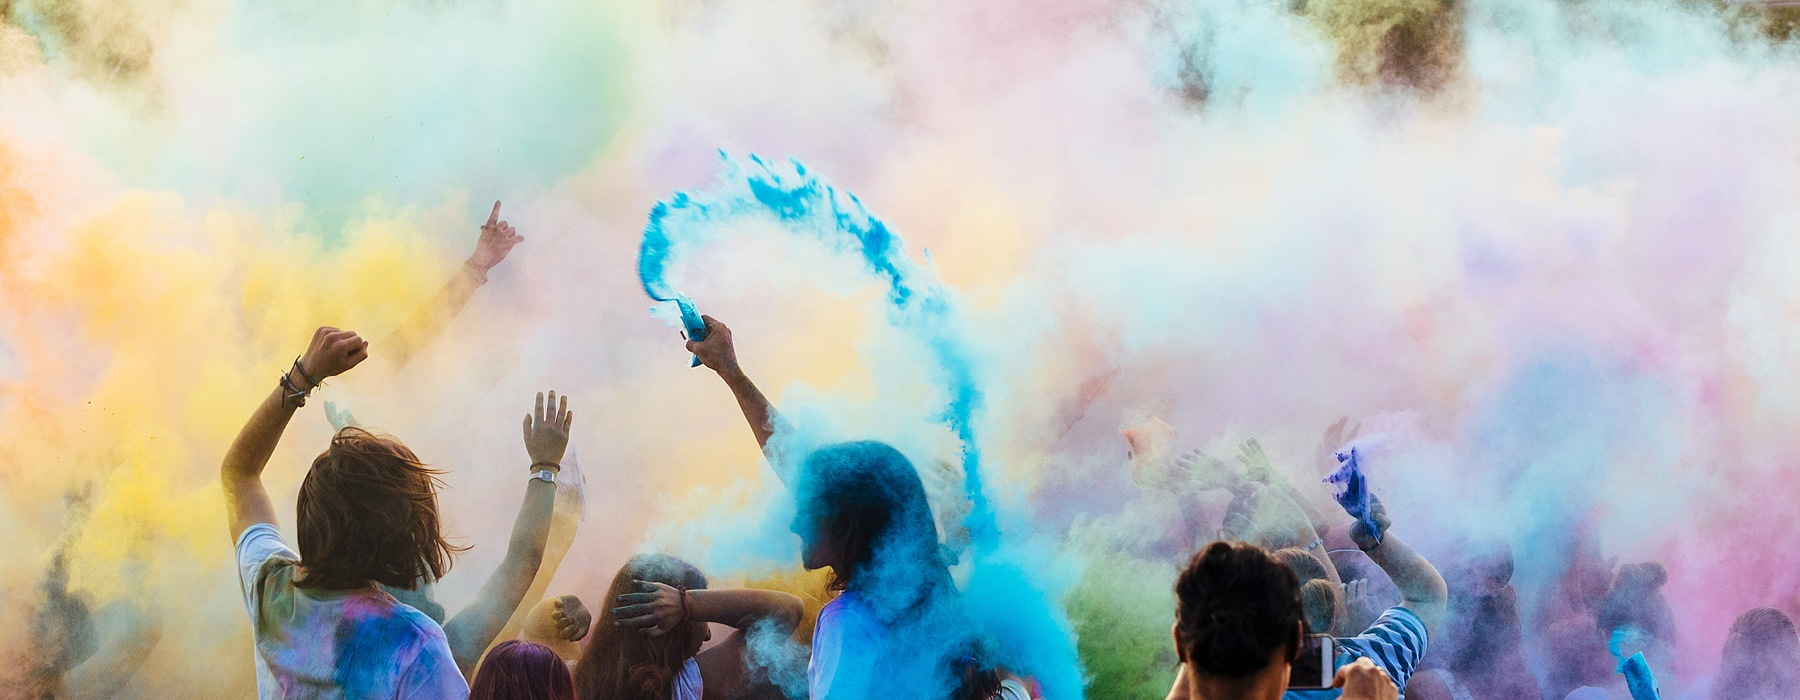 People at an outdoor concert with colored powder